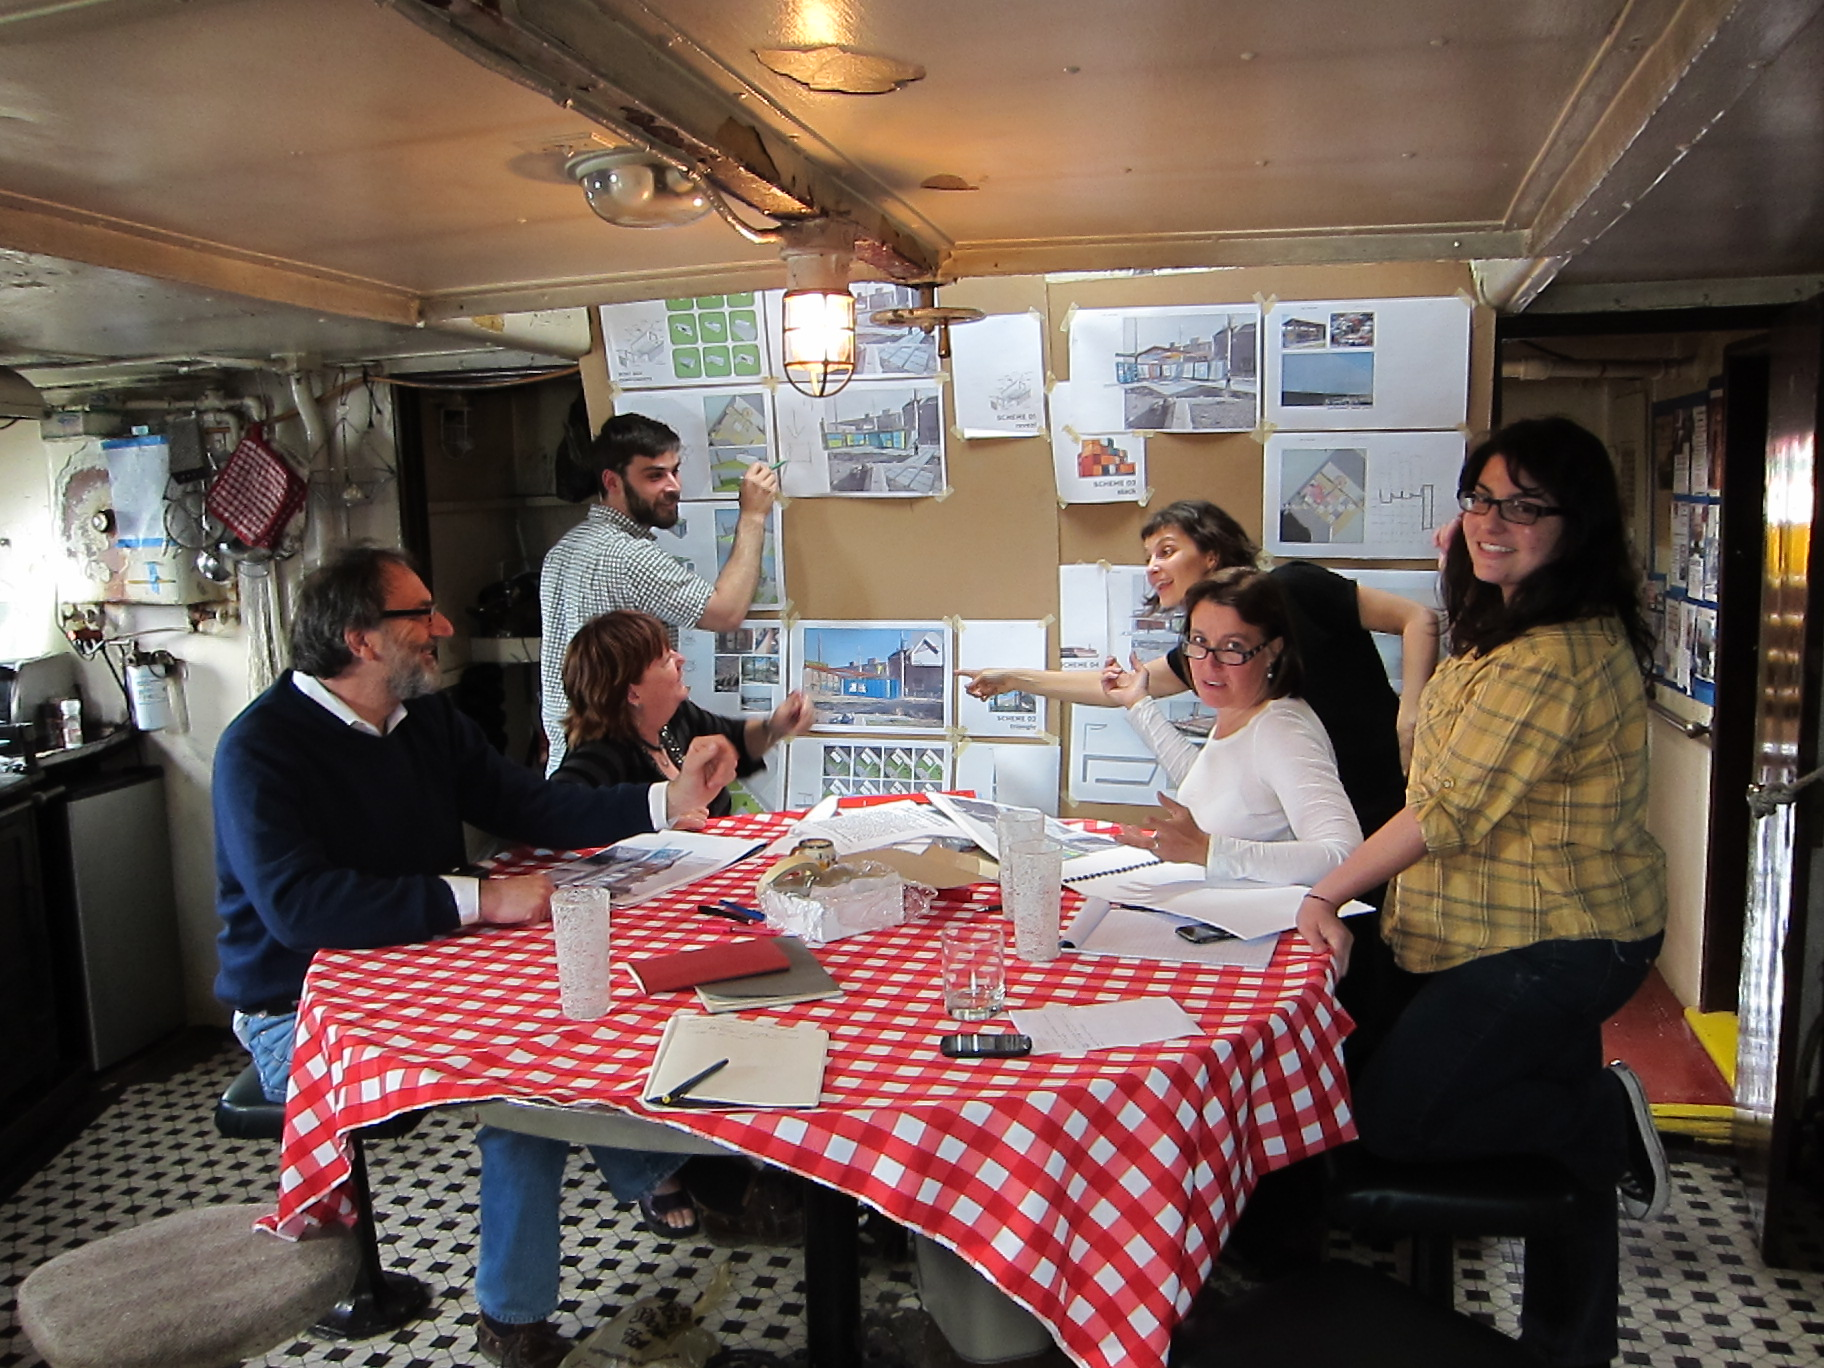 BoatBox planning meeting